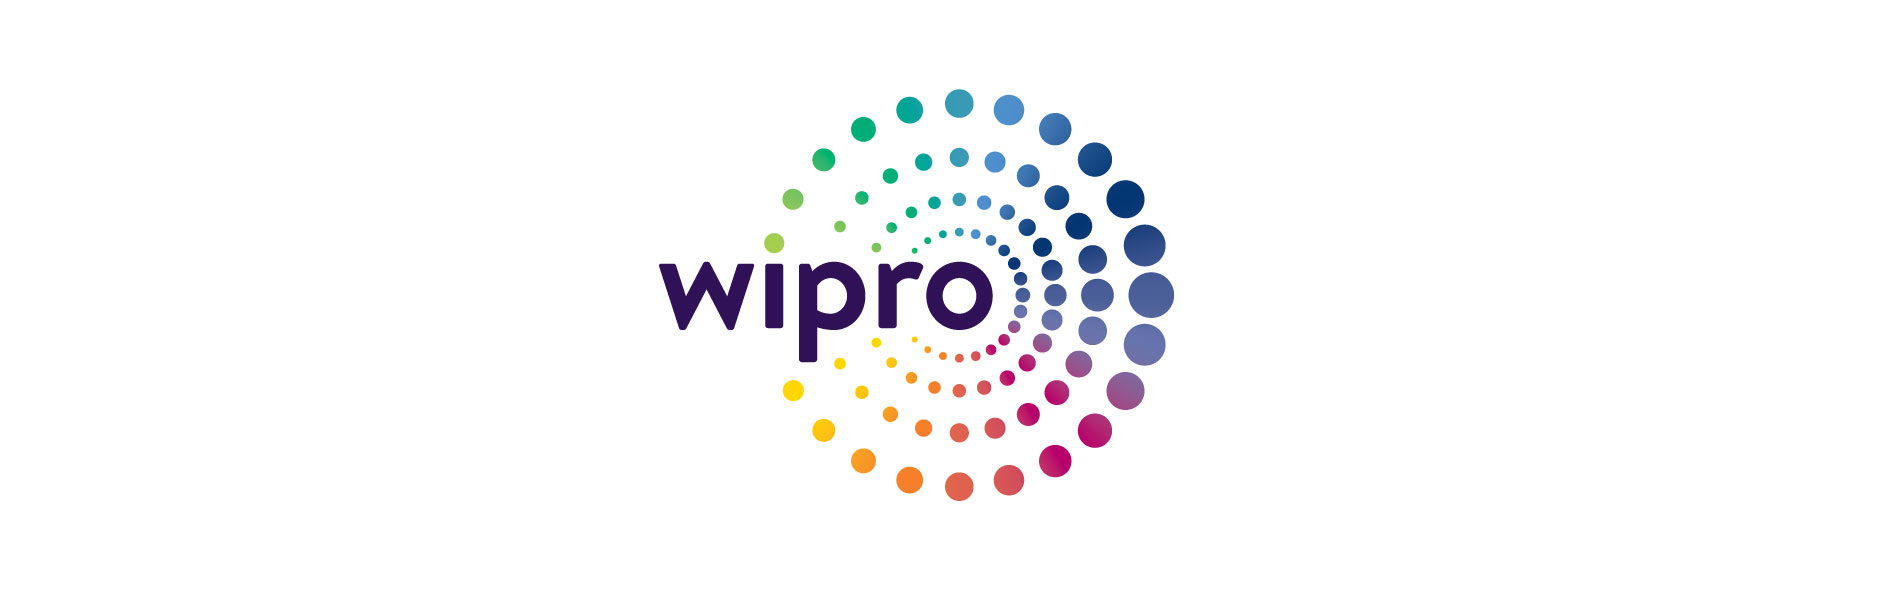 Wipro's Azim Premji on Leadership, Global Expansion, and the U.S. IT Shortage